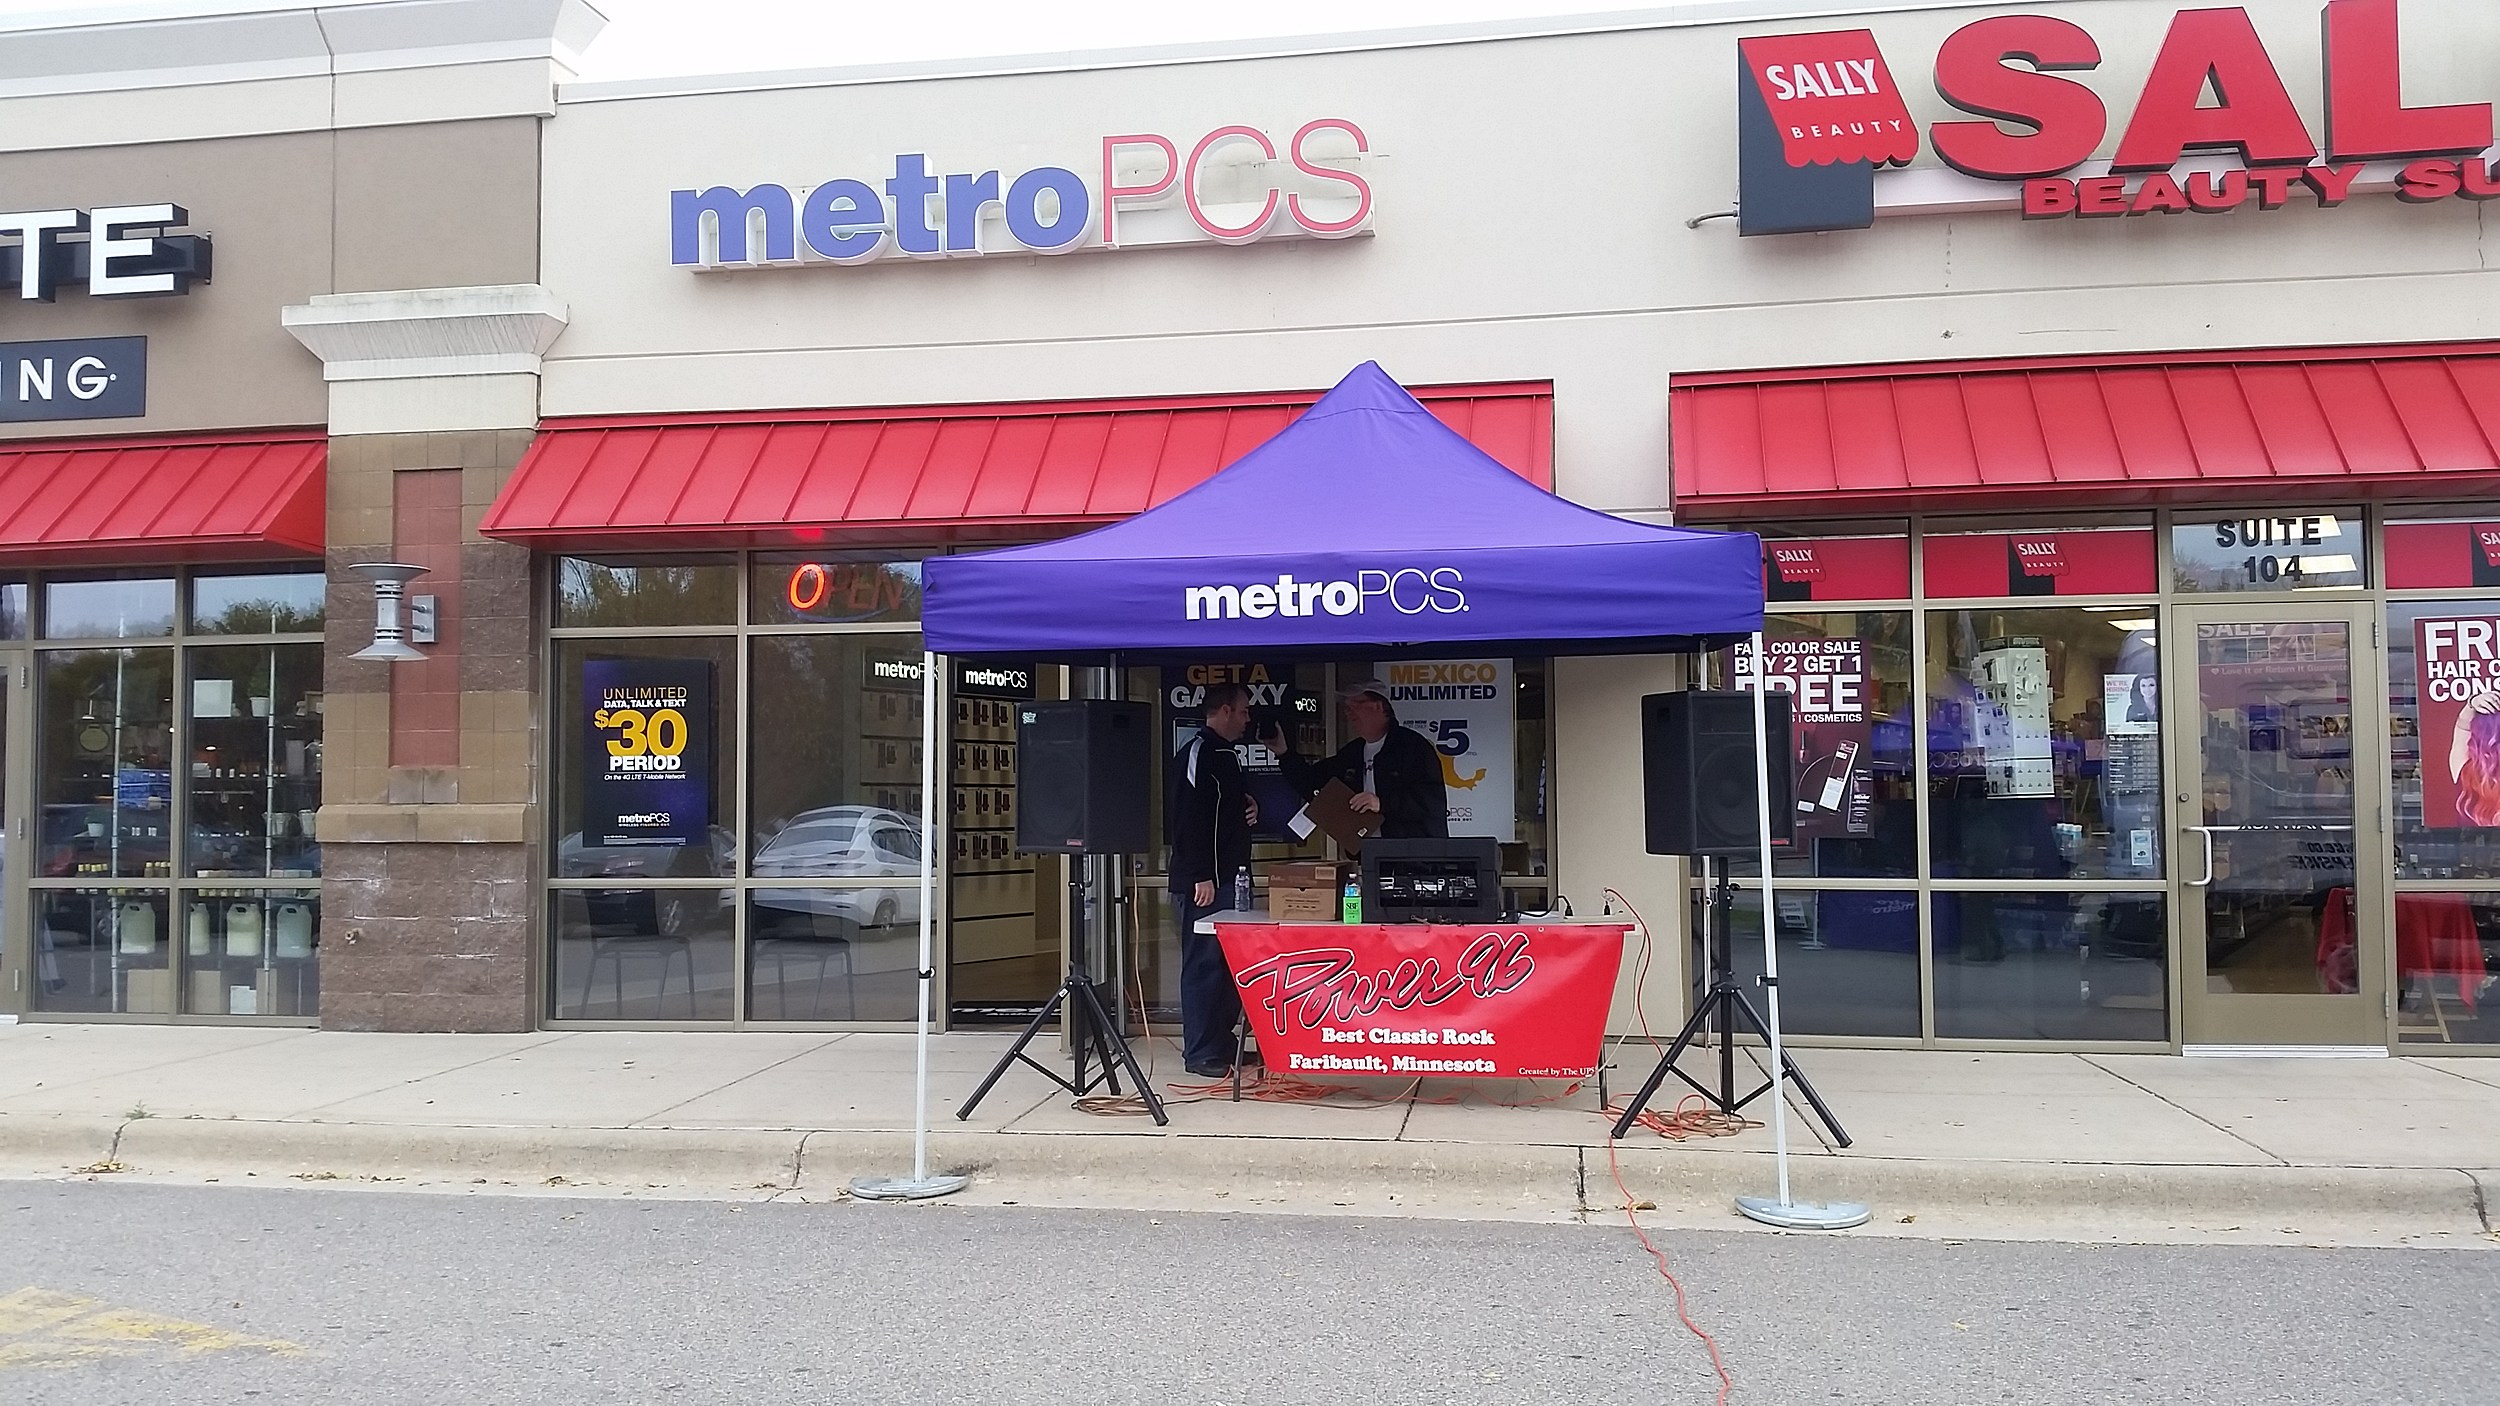 MetroPCS in Faribault Has Free Turkeys This Saturday